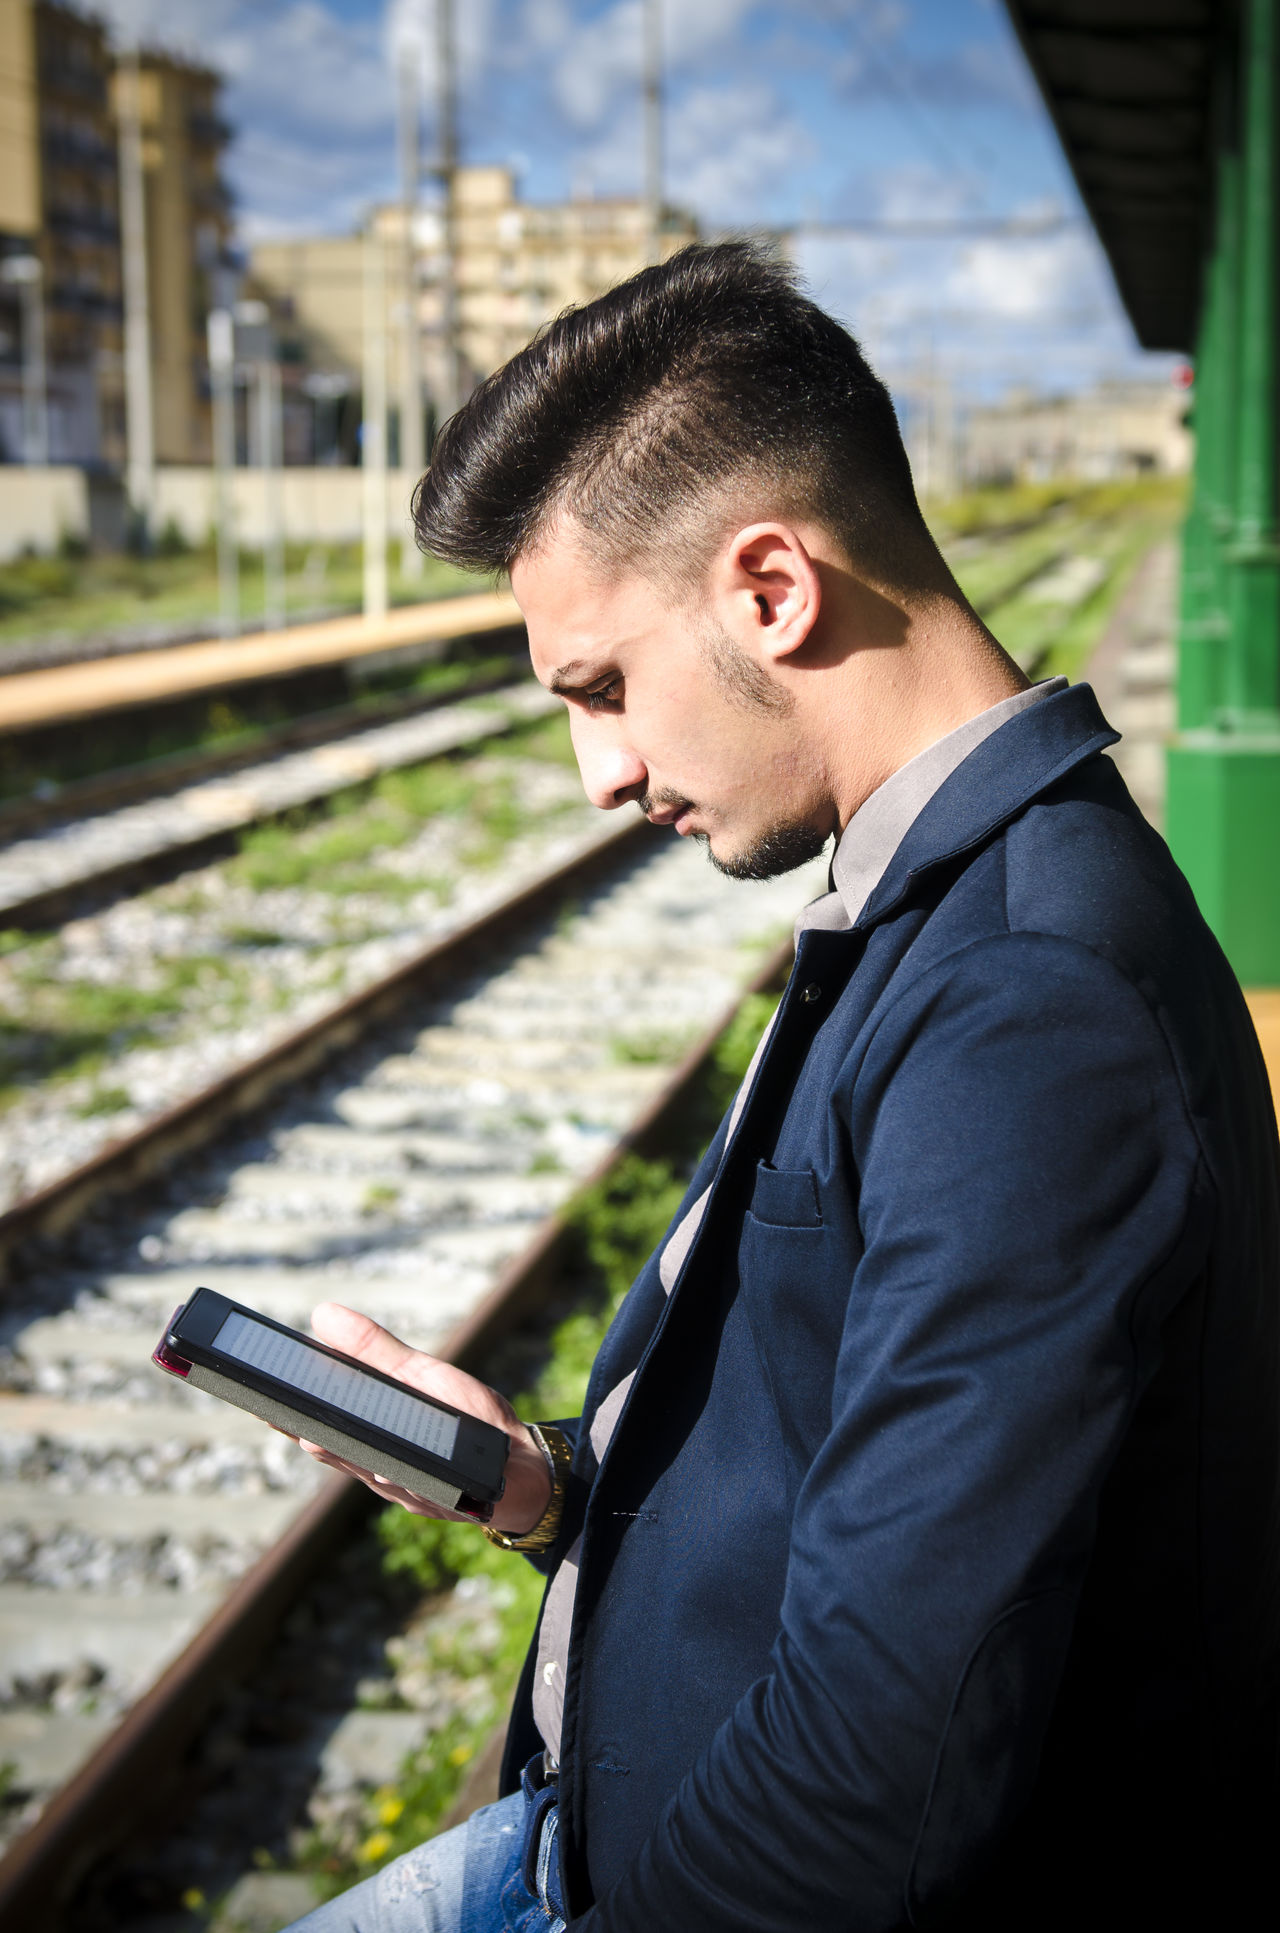 man reading a tablet or ebook in a train station while is waiting for public transport Beard City Ebook Human Body Part Men One Man Only One Person Only Men Outdoors Portable Information Device Portrait Reader Tablet Train Train Station Travel Trip Wireless Technology Young Adult